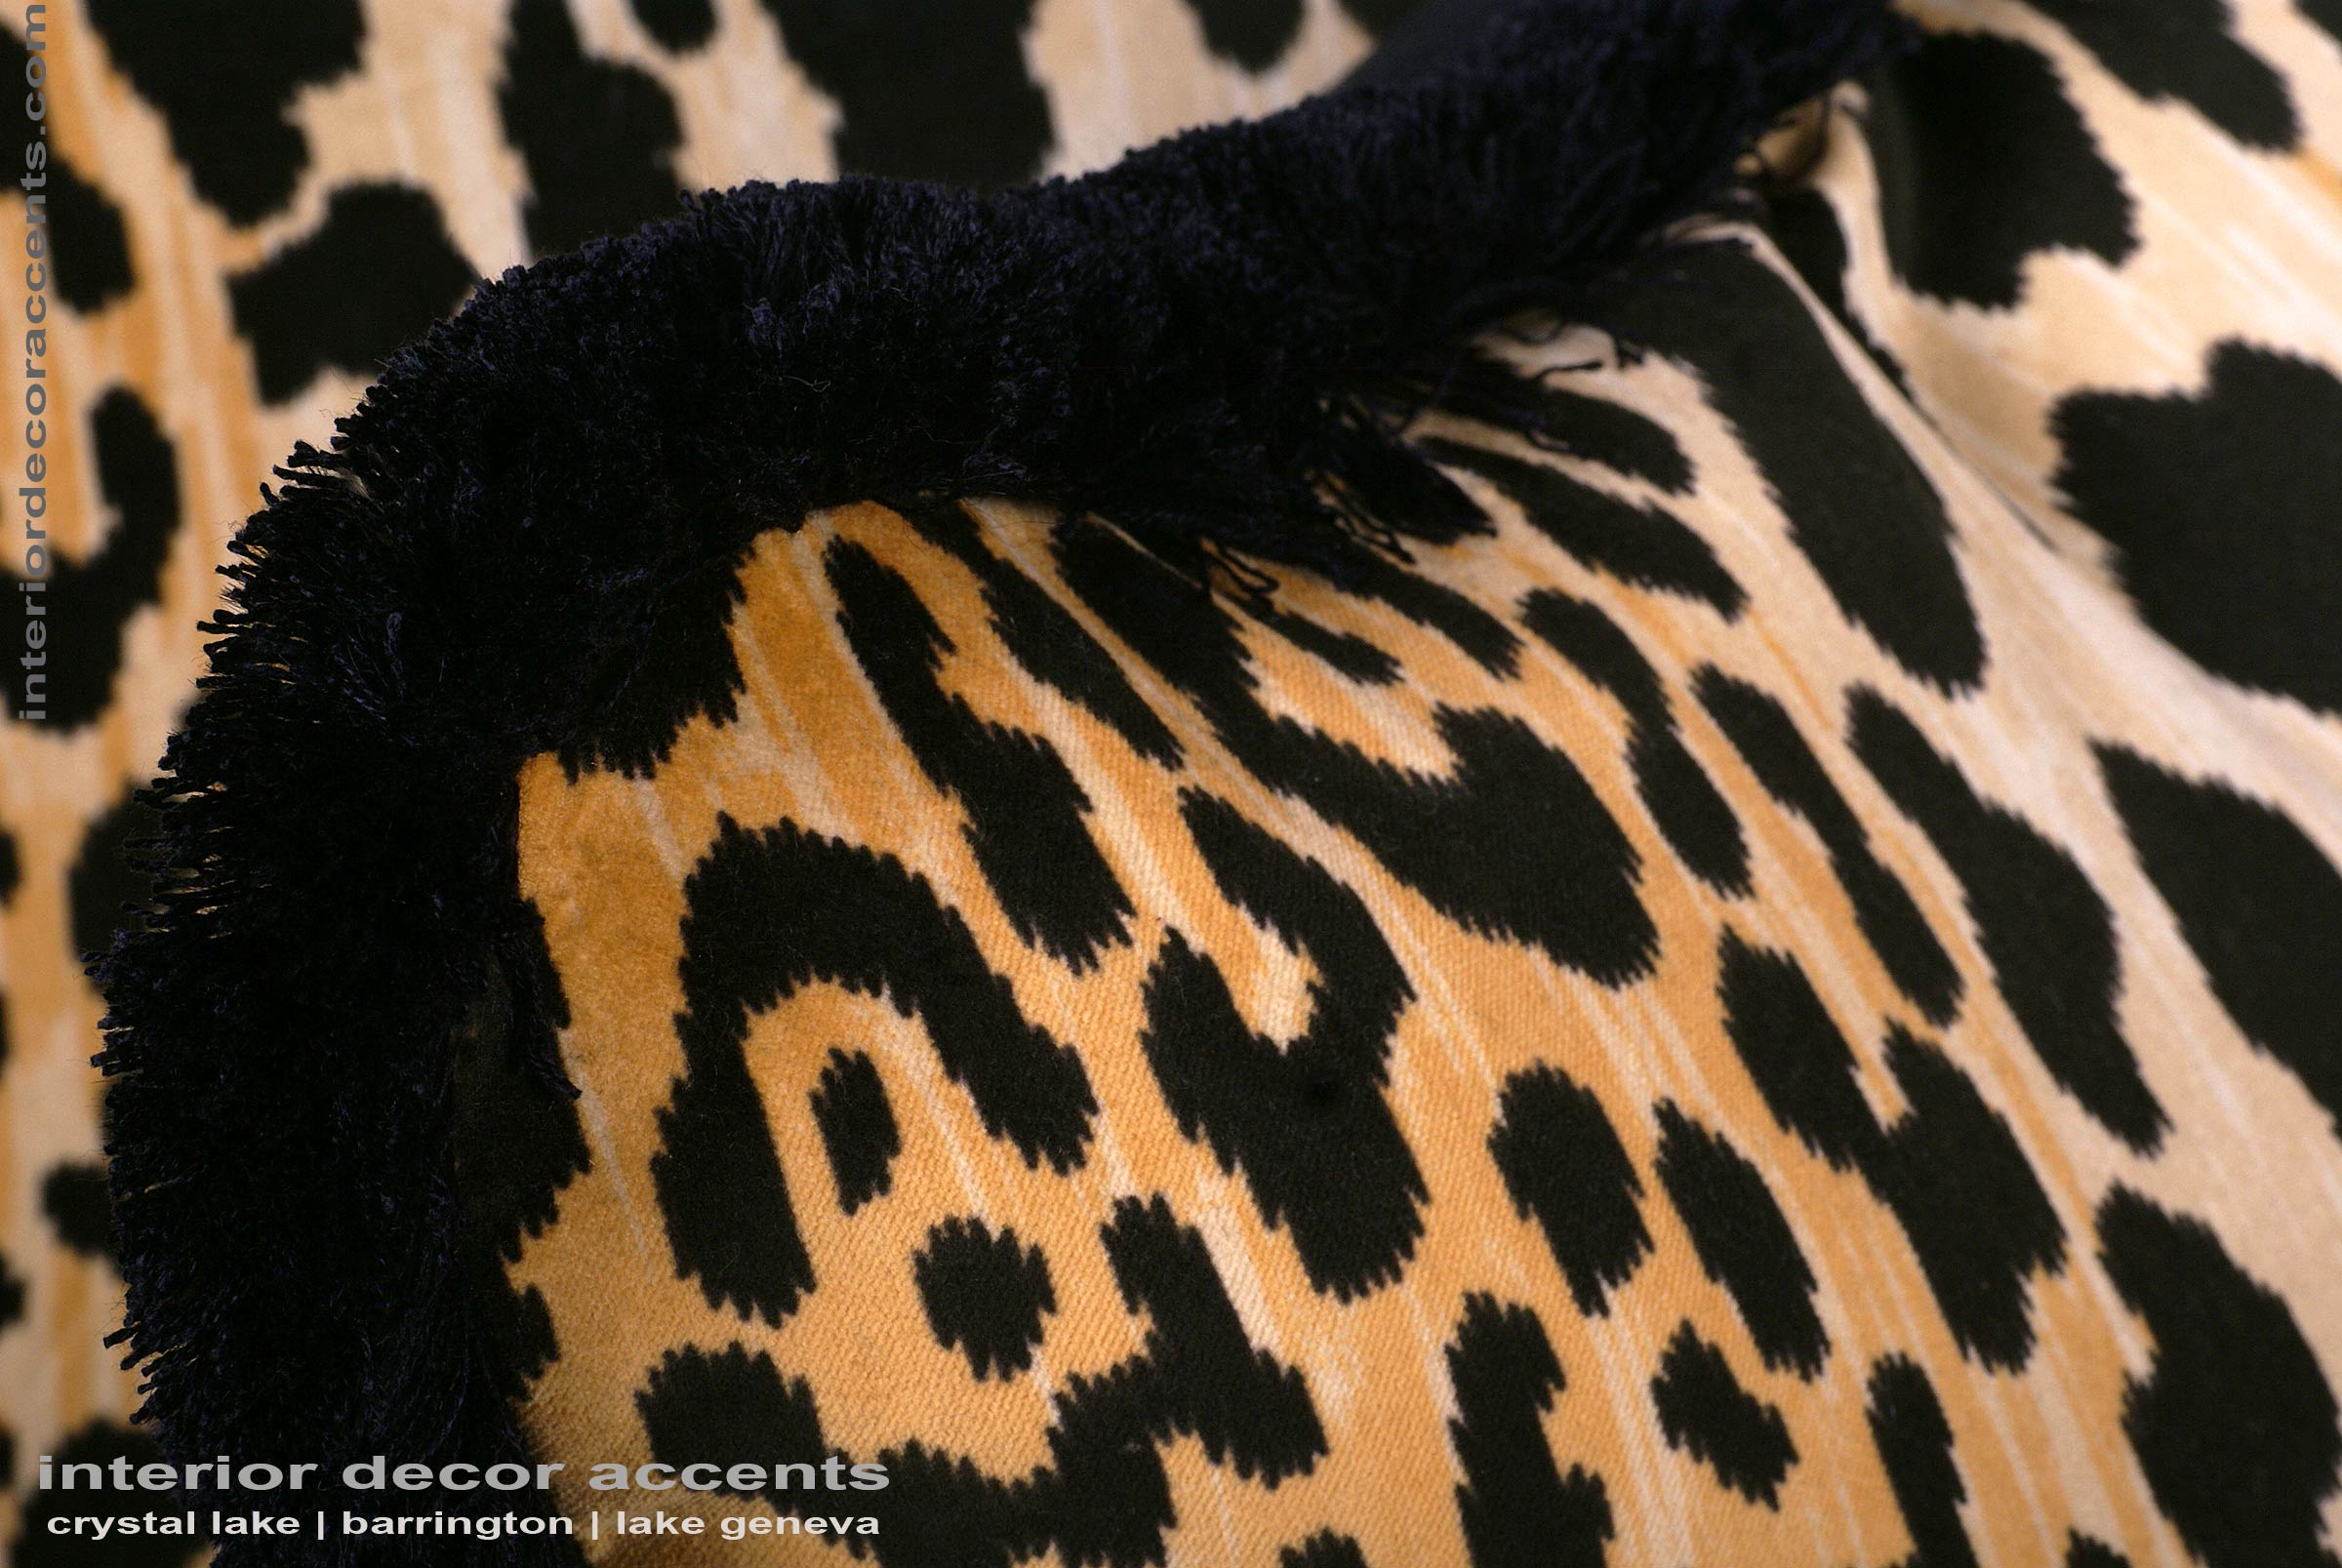 Alluring Leopard Velvet Decorative Throw Pillows From Stroheim With Brunschwig Backing For Modern Transitional